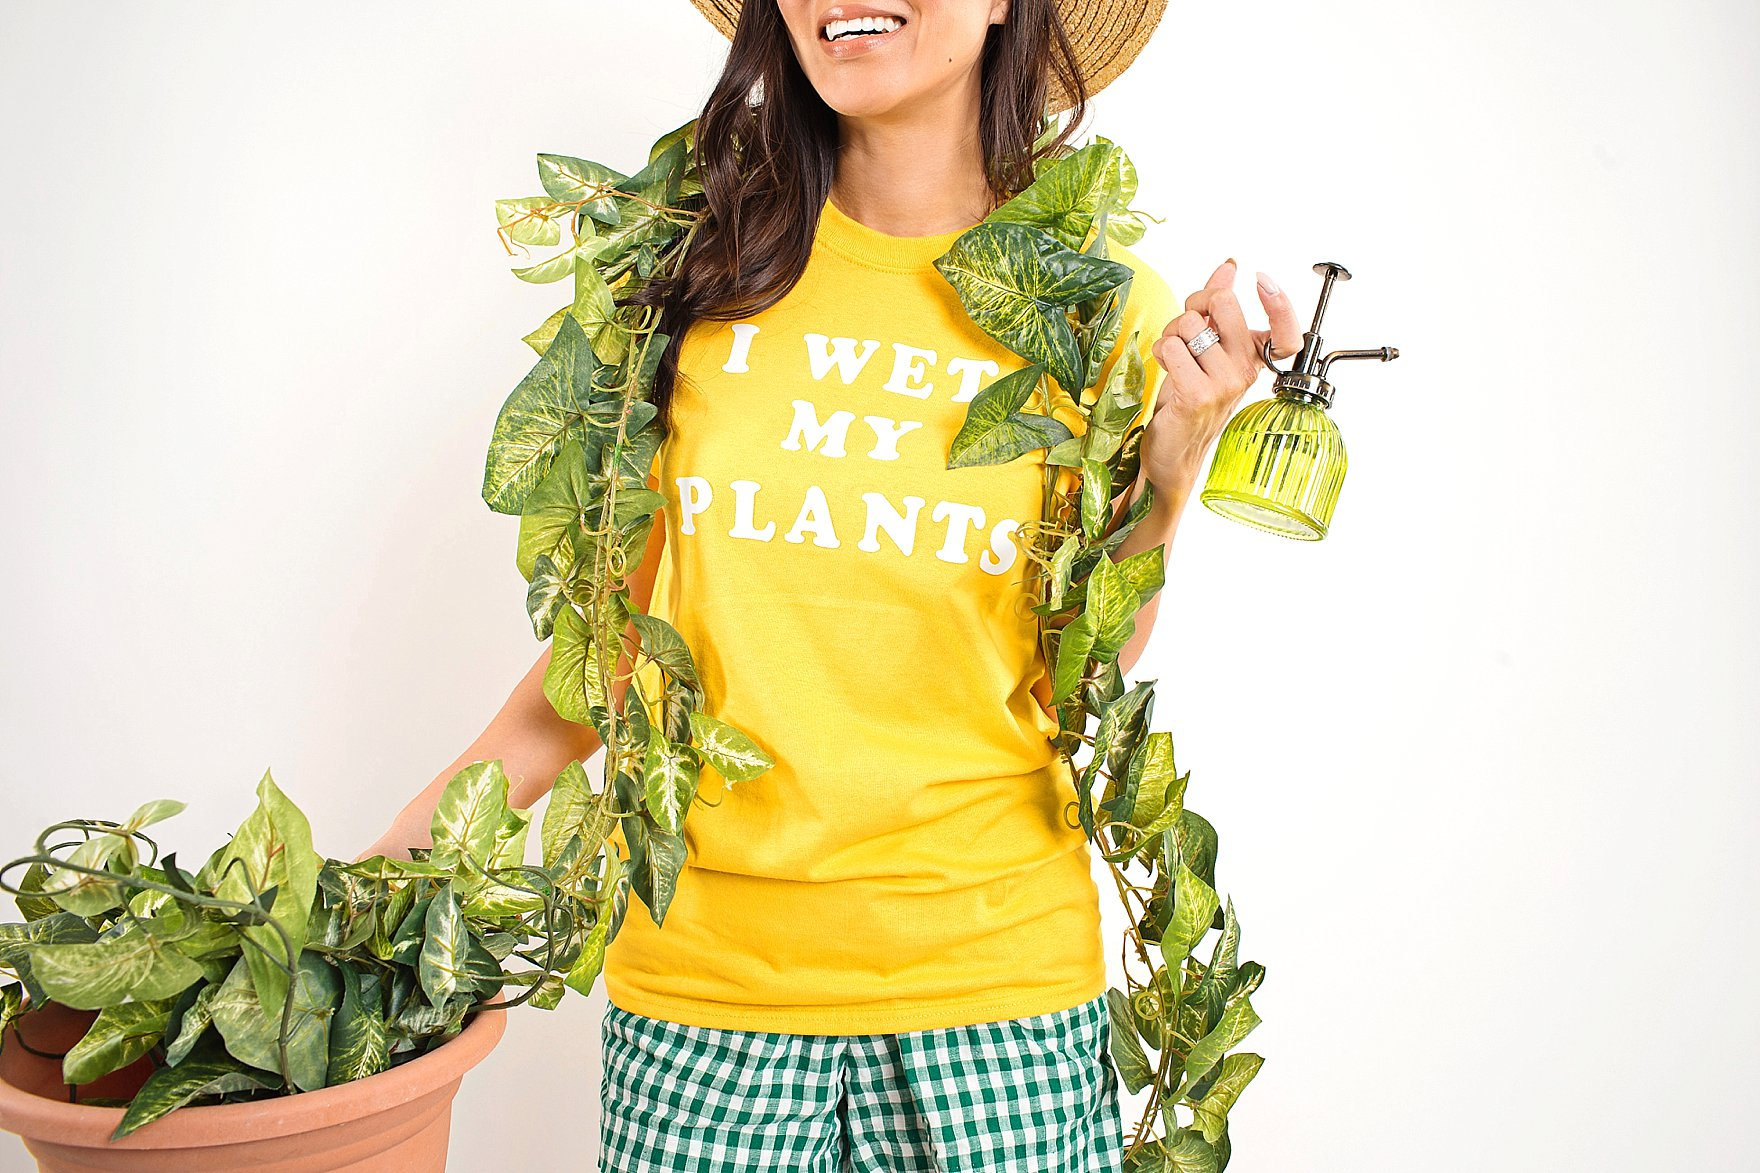 crazy plant lady costume halloween last minute funny plant shirts I wet my plants